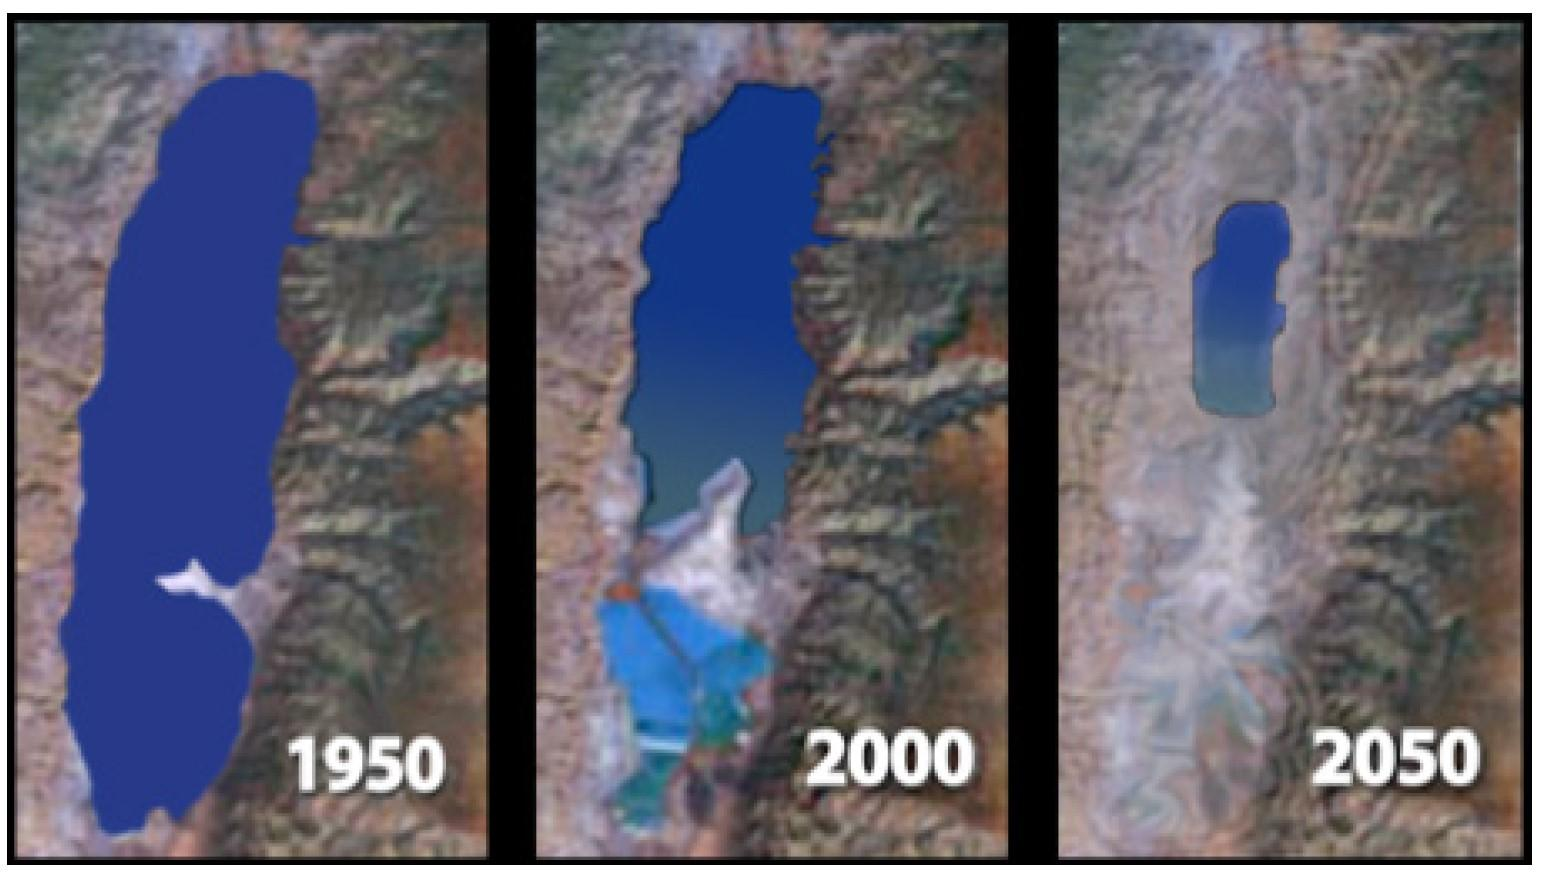 The accelerated rate of receding water levels in the Dead Sea over the last few decades.  - The Dying of the Dead Sea, The ancient salt sea is the site of a looming environmental catastrophe, By Joshua Hammer | SMITHSONIAN MAGAZINE | OCTOBER 2005